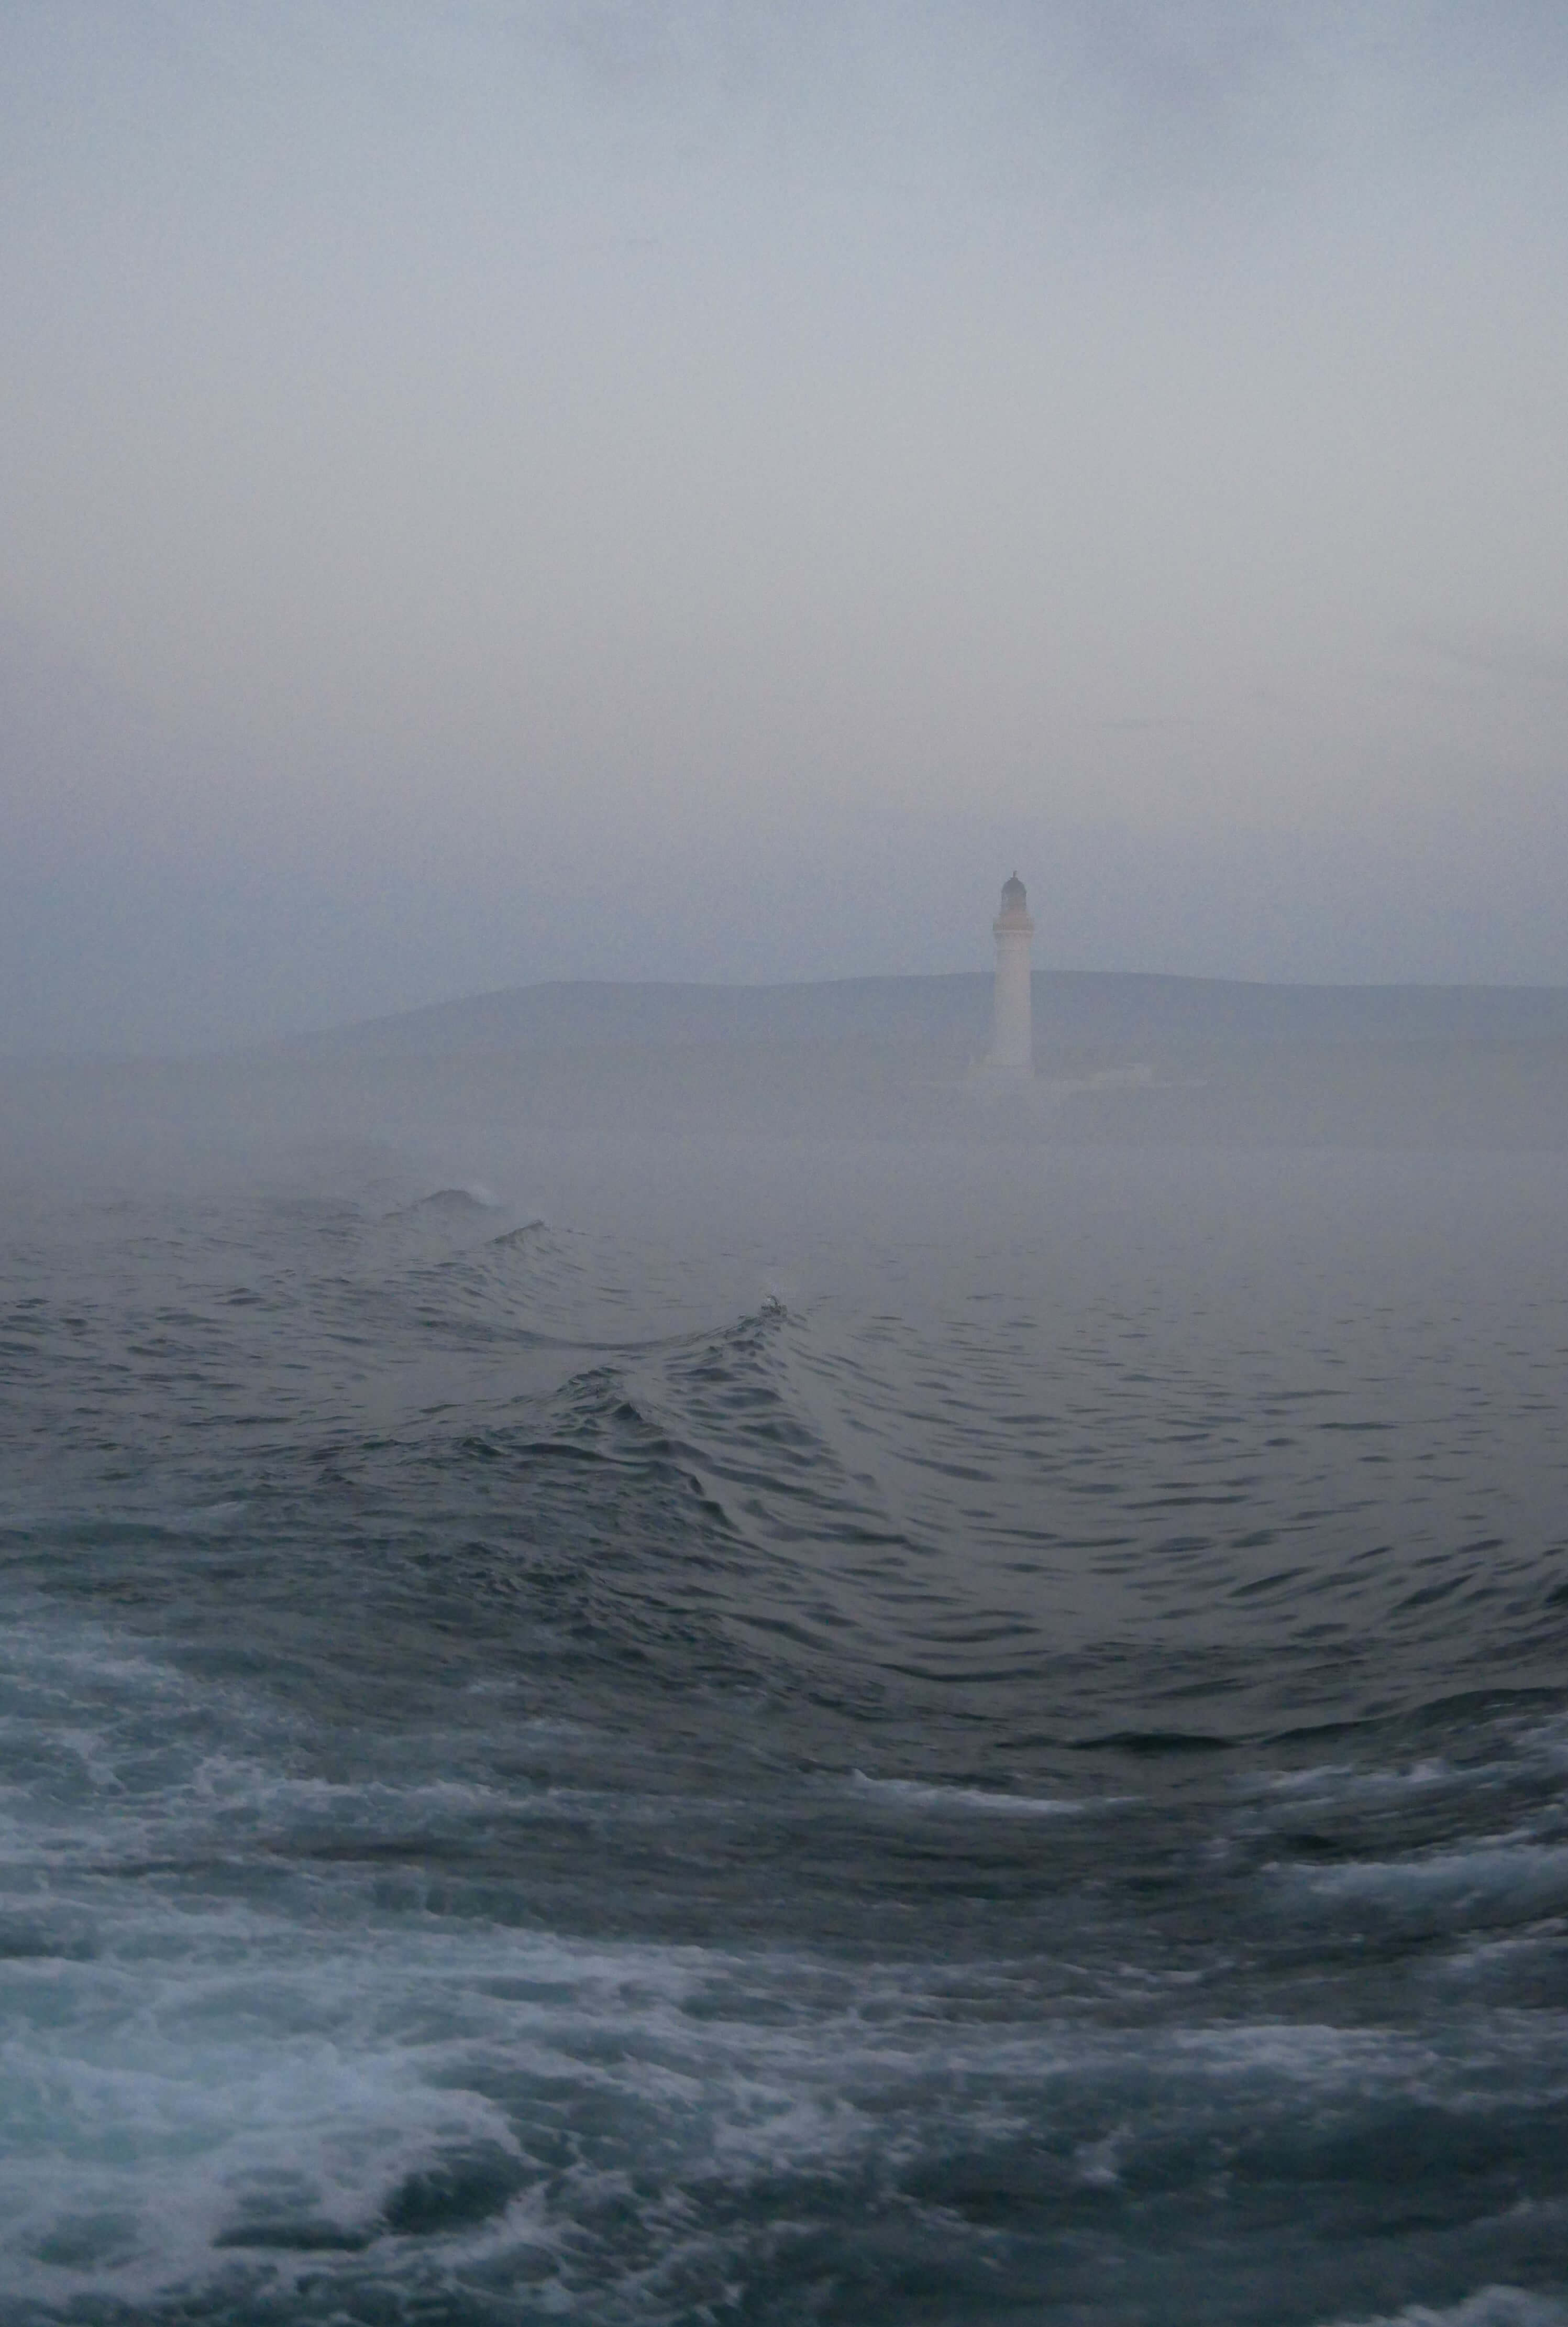 Hoy High lighthouse on the island of Graemsay, as seen from the ferry from Hoy to Stromness, Orkney Islands, Scotland.